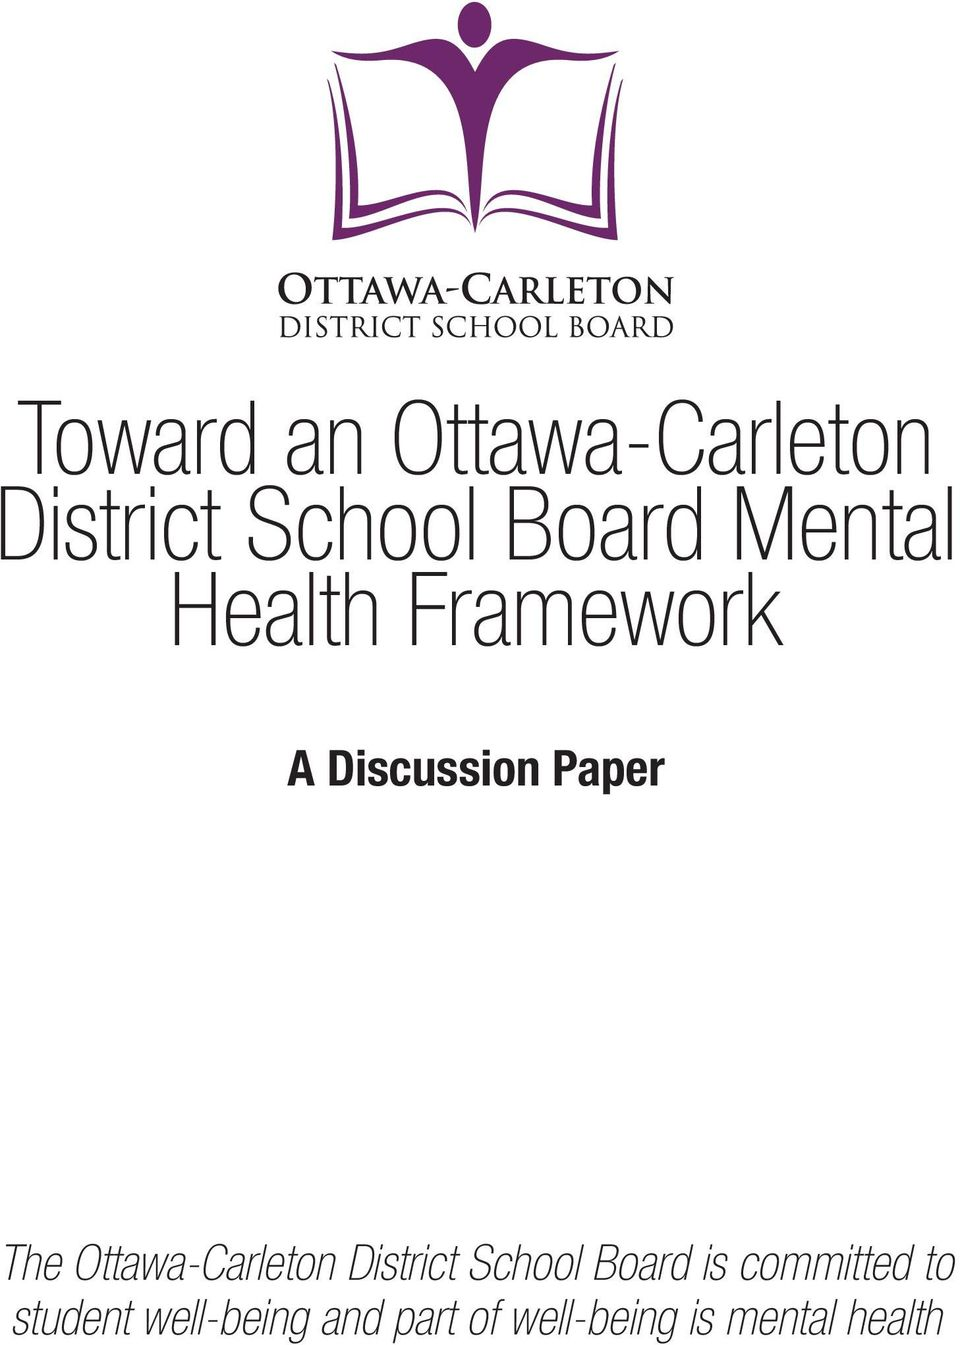 Ottawa-Carleton District School Board is committed